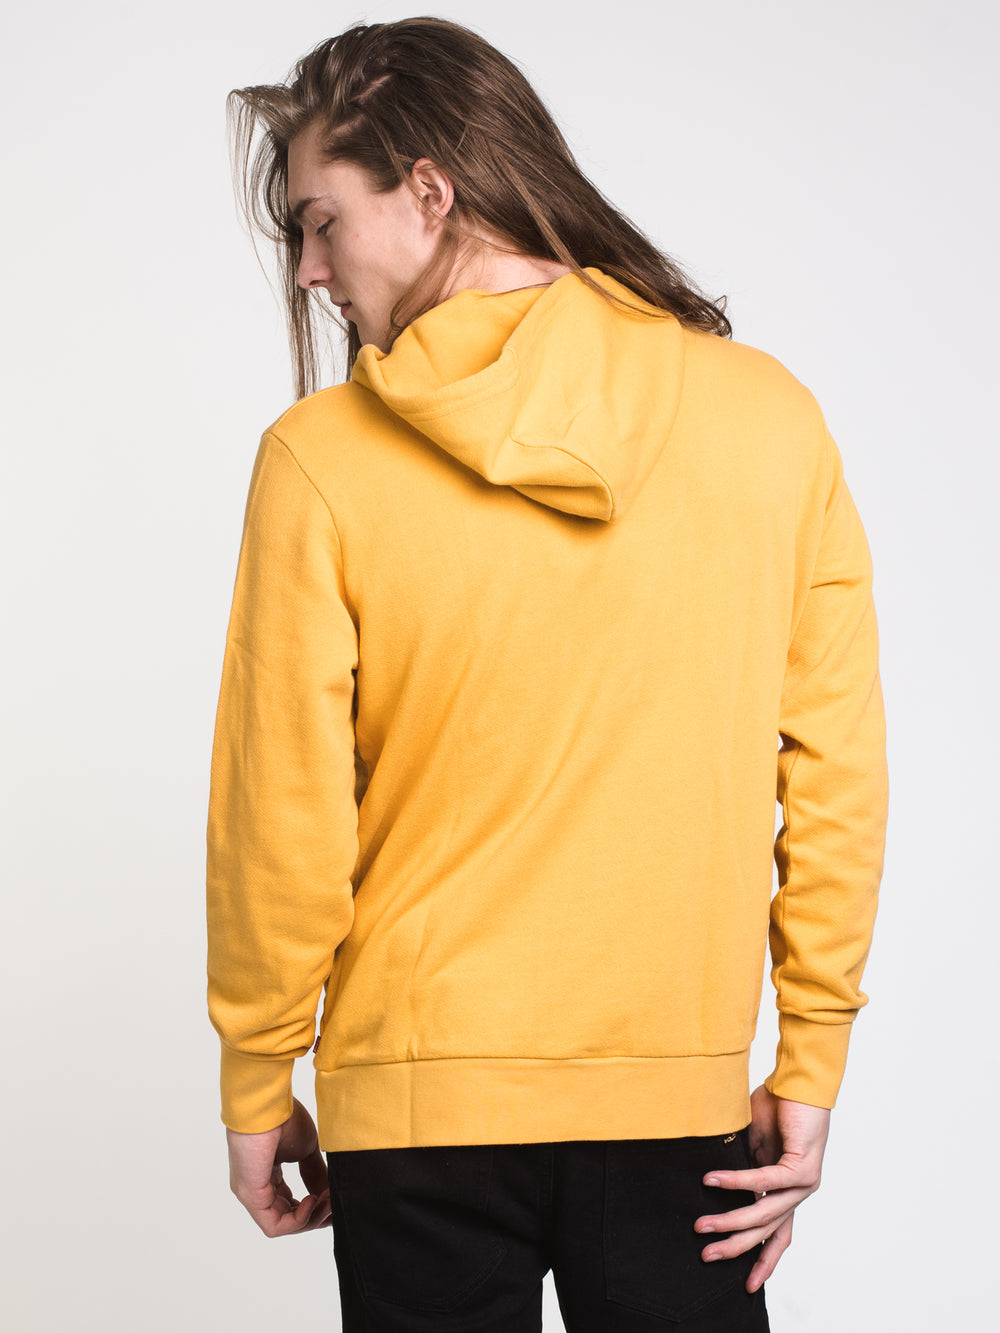 MENS GRAPHIC SERF PULLOVER HOODIE - APRICOT